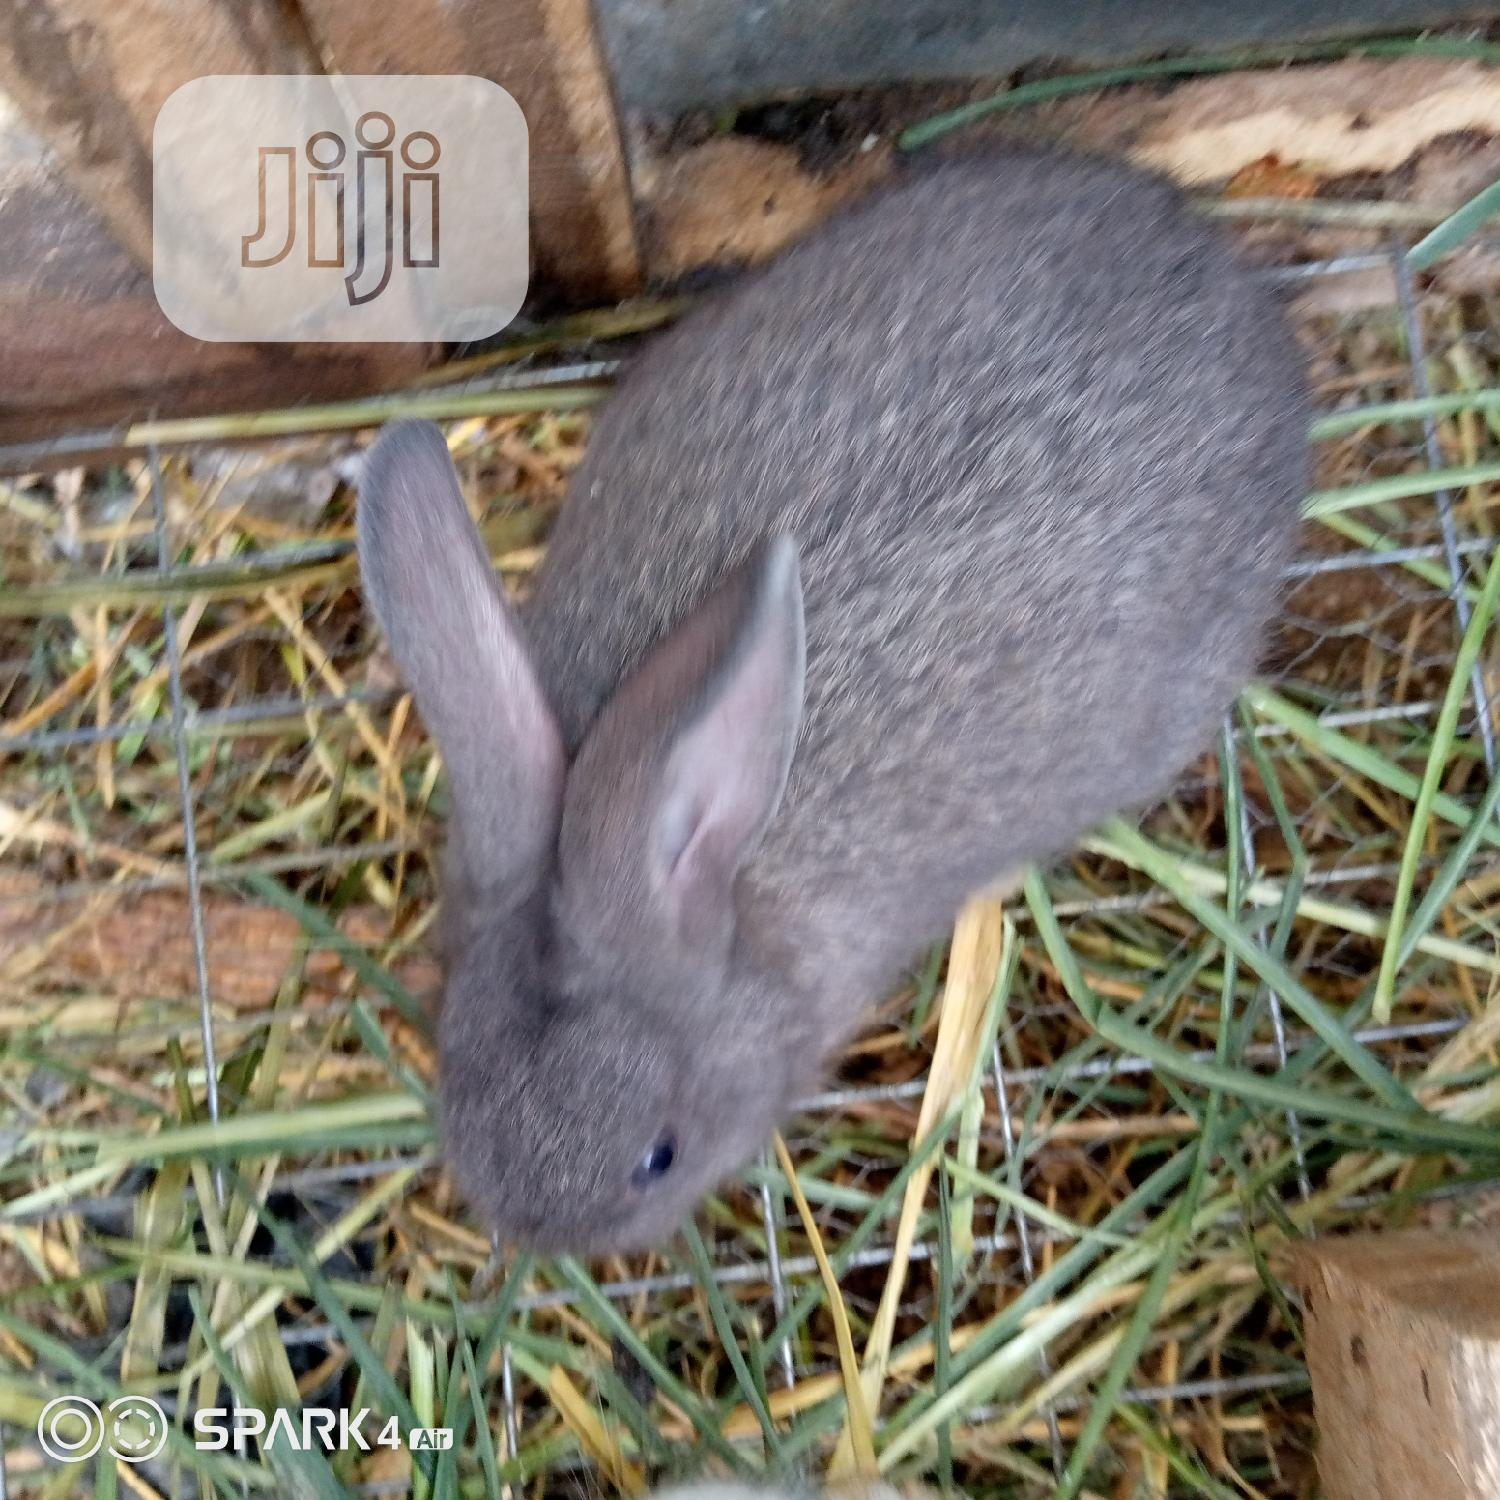 Well Vaccinated Pure Bred Satin Rabbits